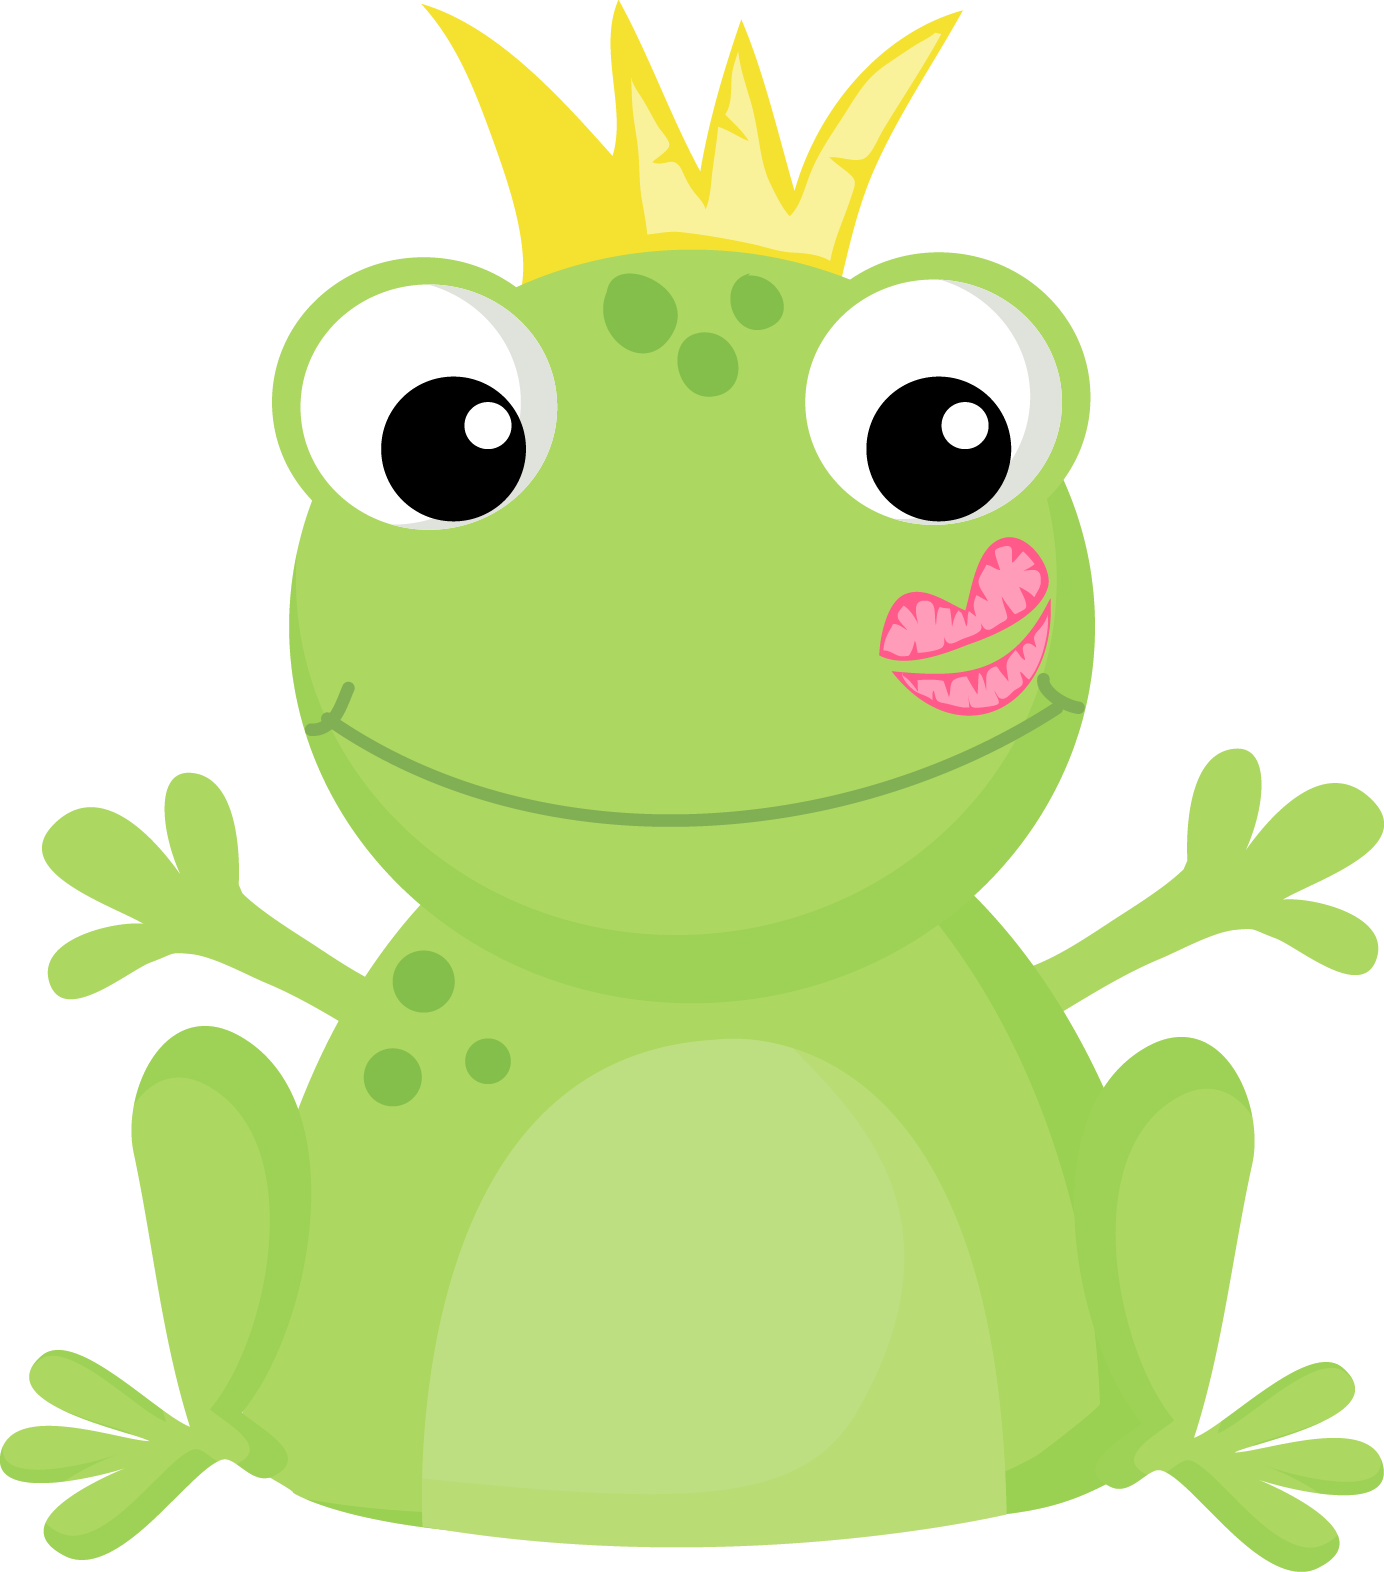 Toad prince pencil and. Clipart teacher frog